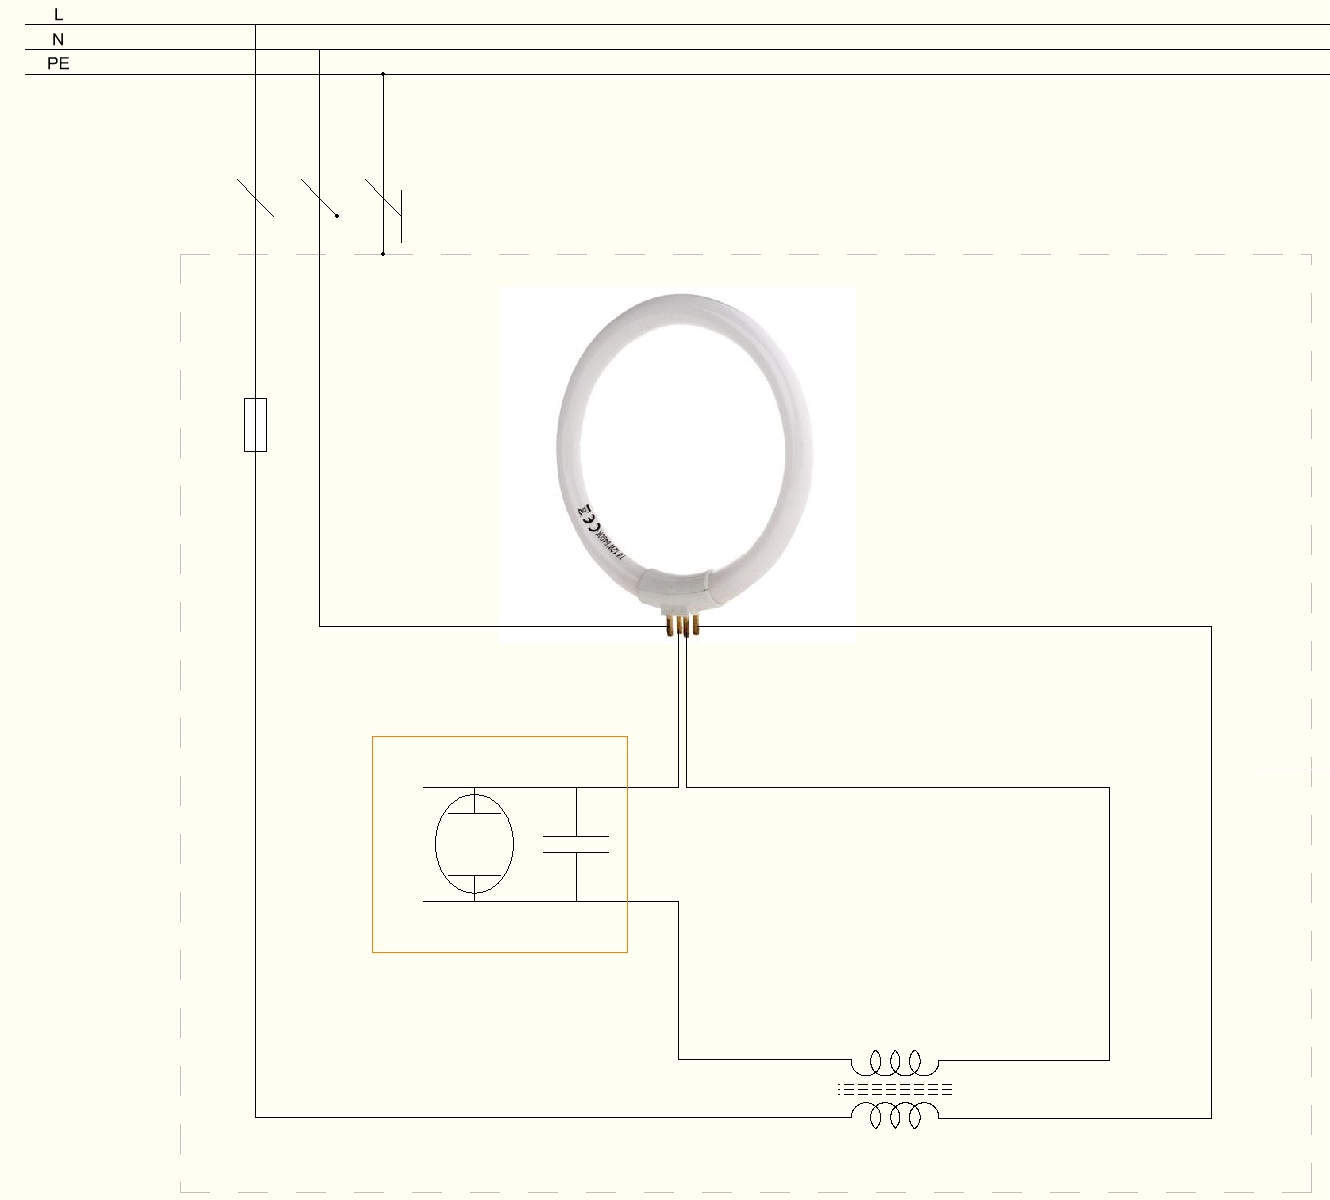 File:How to wire circular fluorescent lamp.JPG